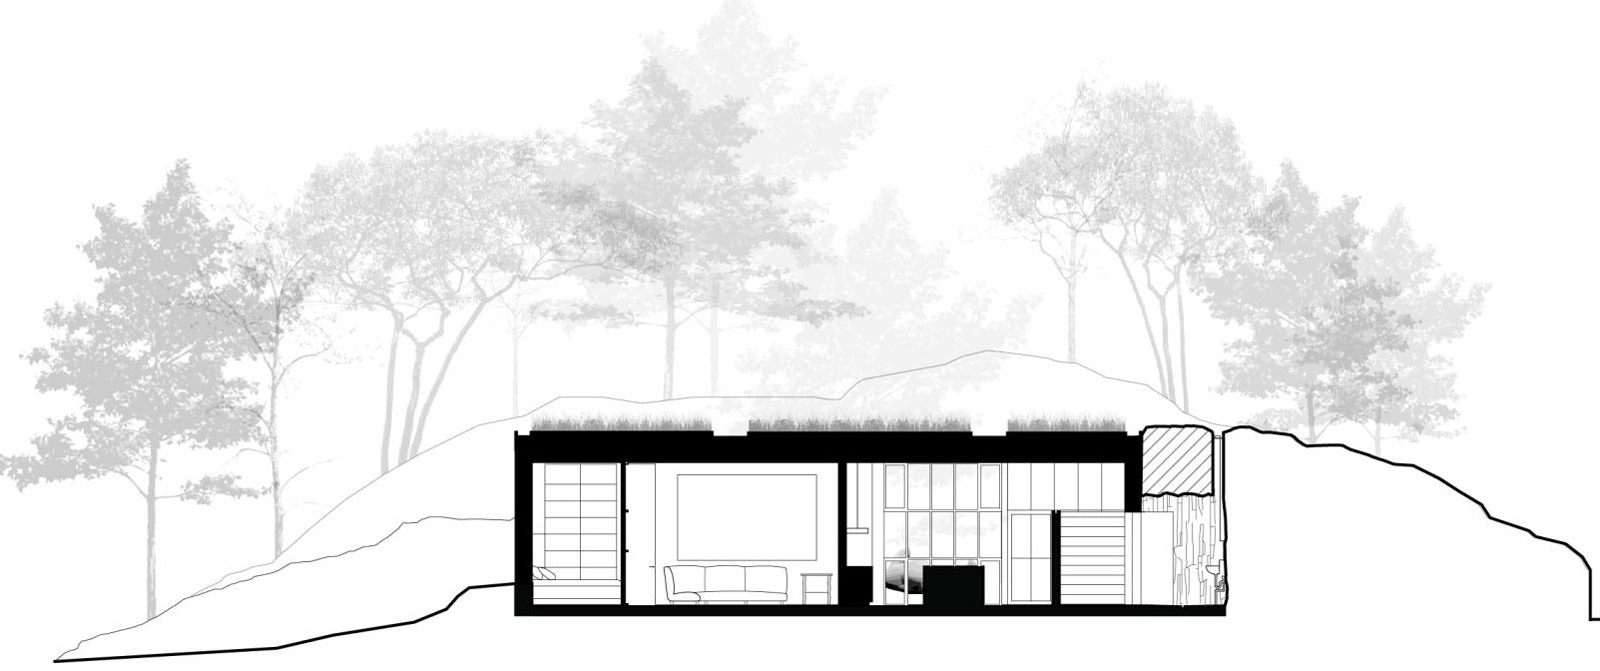 Section, The Pierre on San Juan Island by Olson Kundig Architects